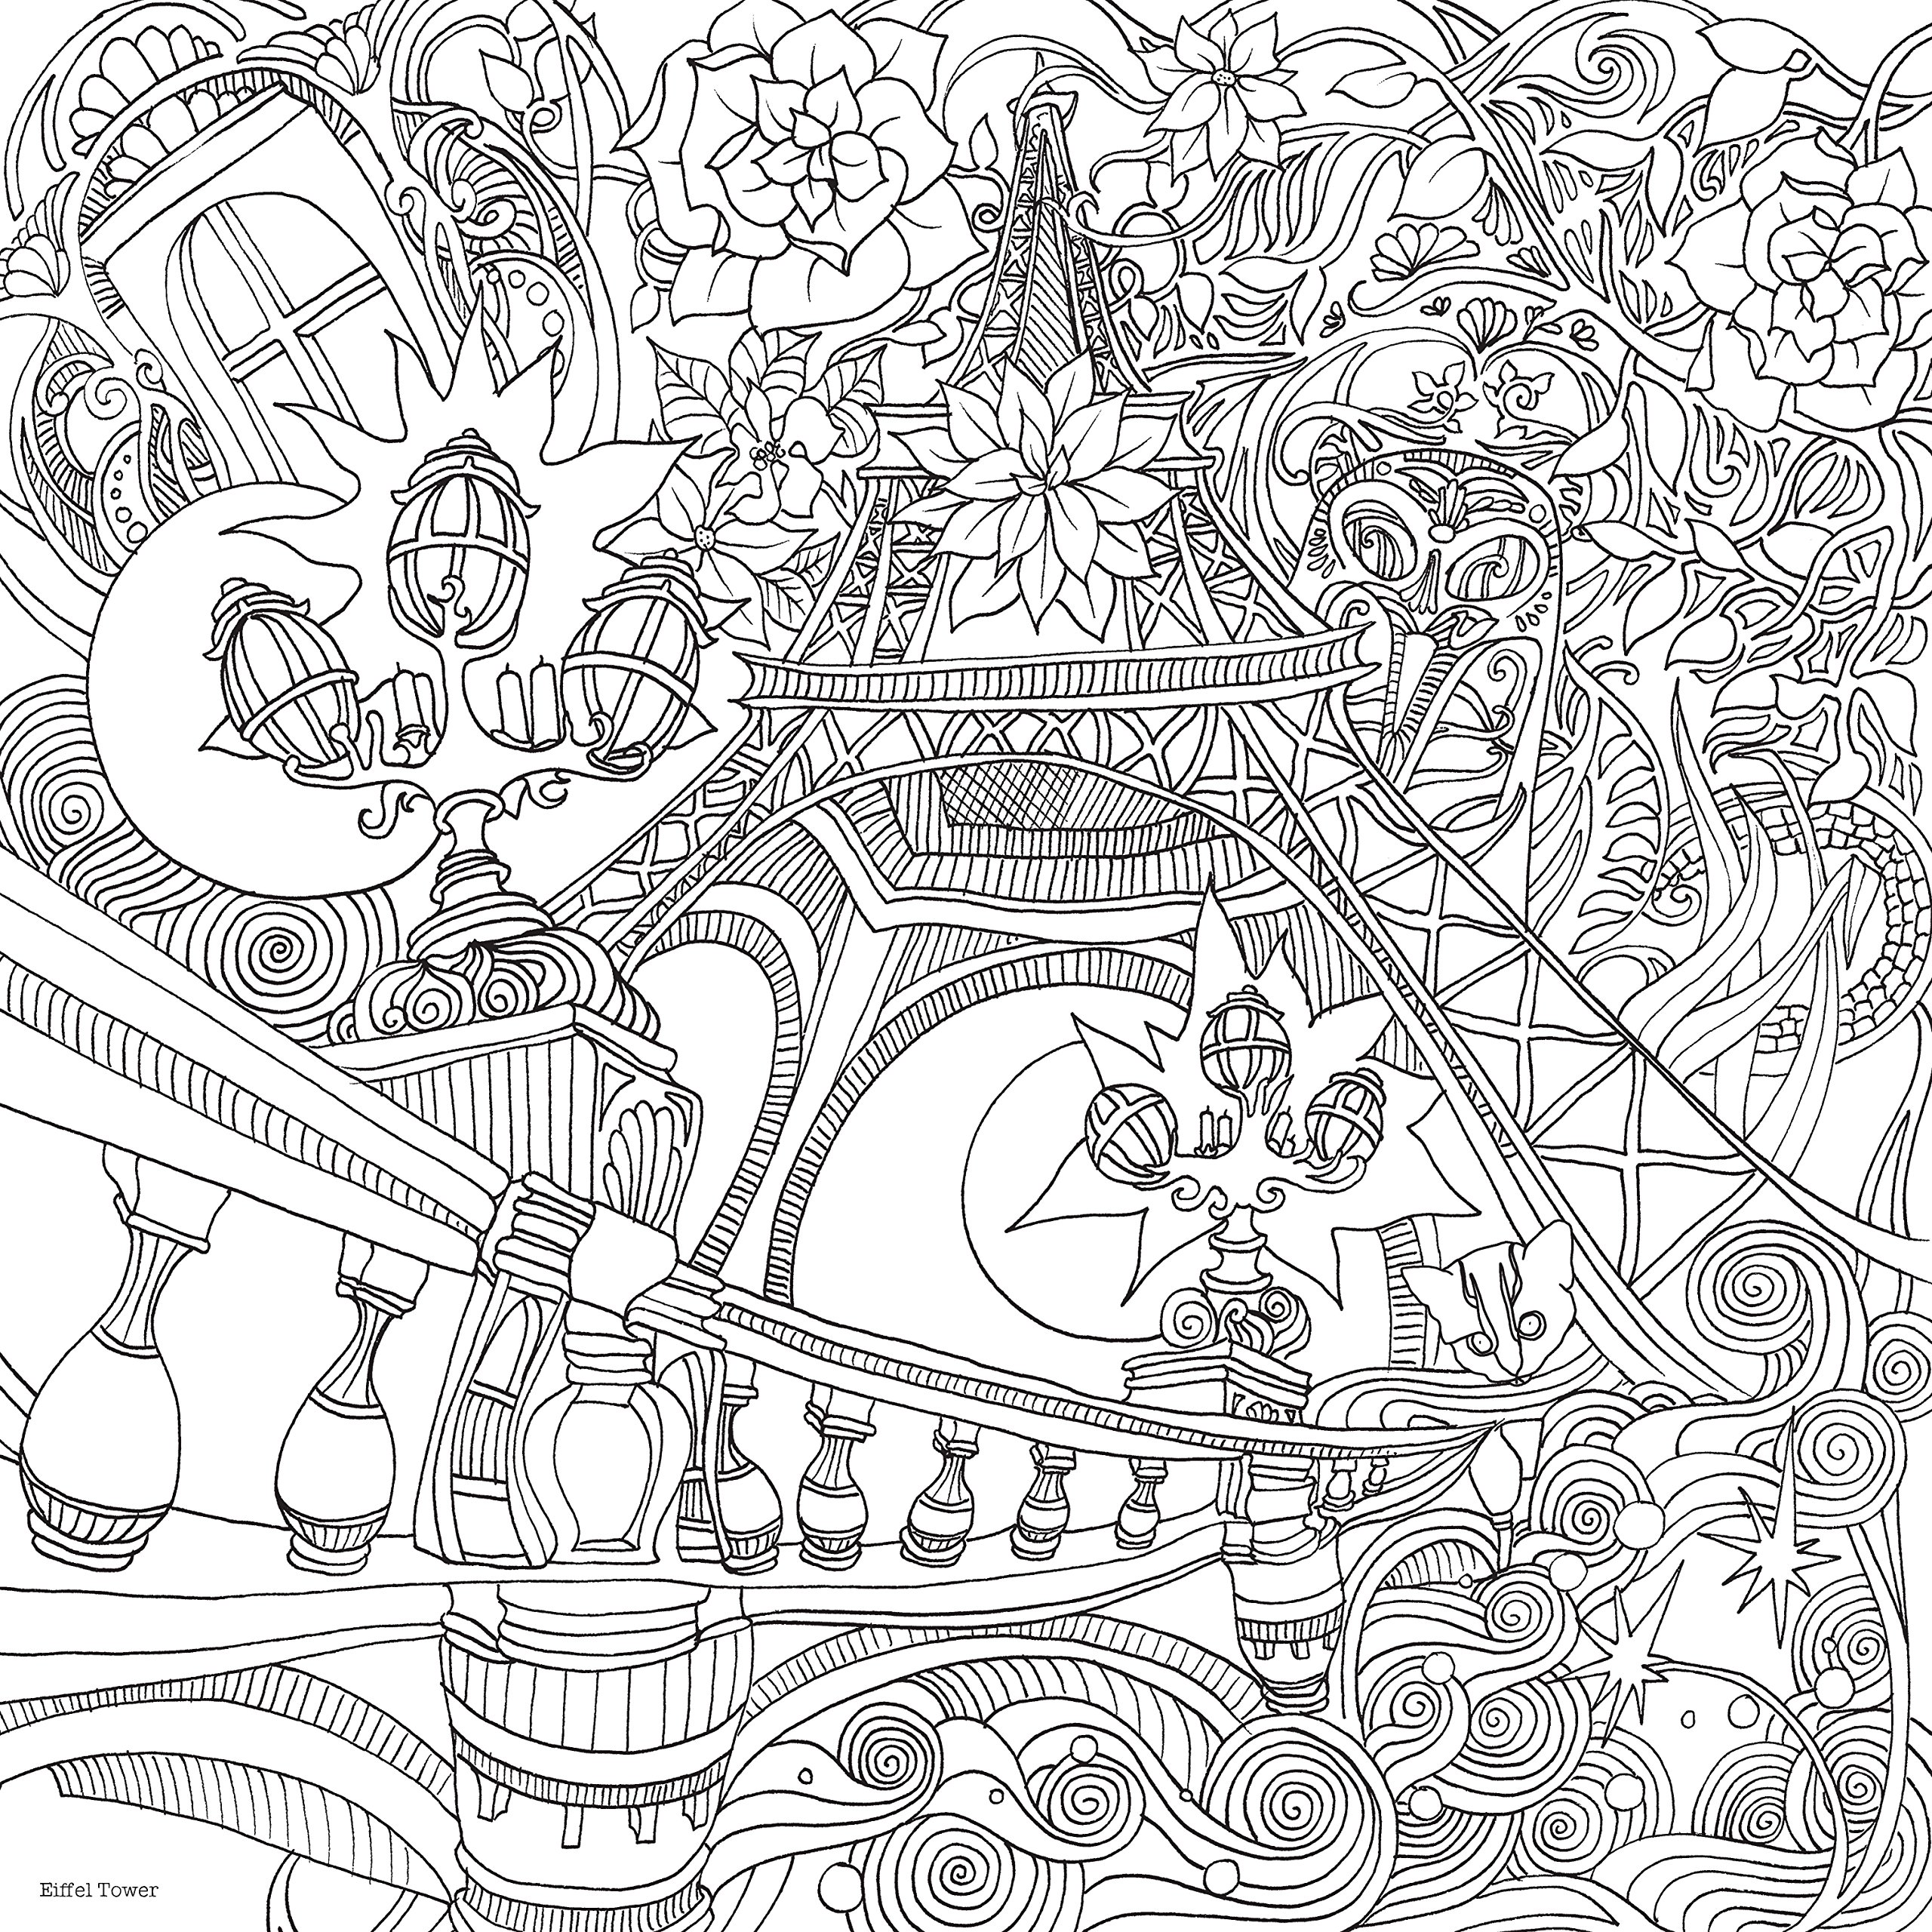 How to say colouring book in japanese - Amazon Com The Magical City A Colouring Book Magical Colouring Books 0783324954333 Lizzie Mary Cullen Books